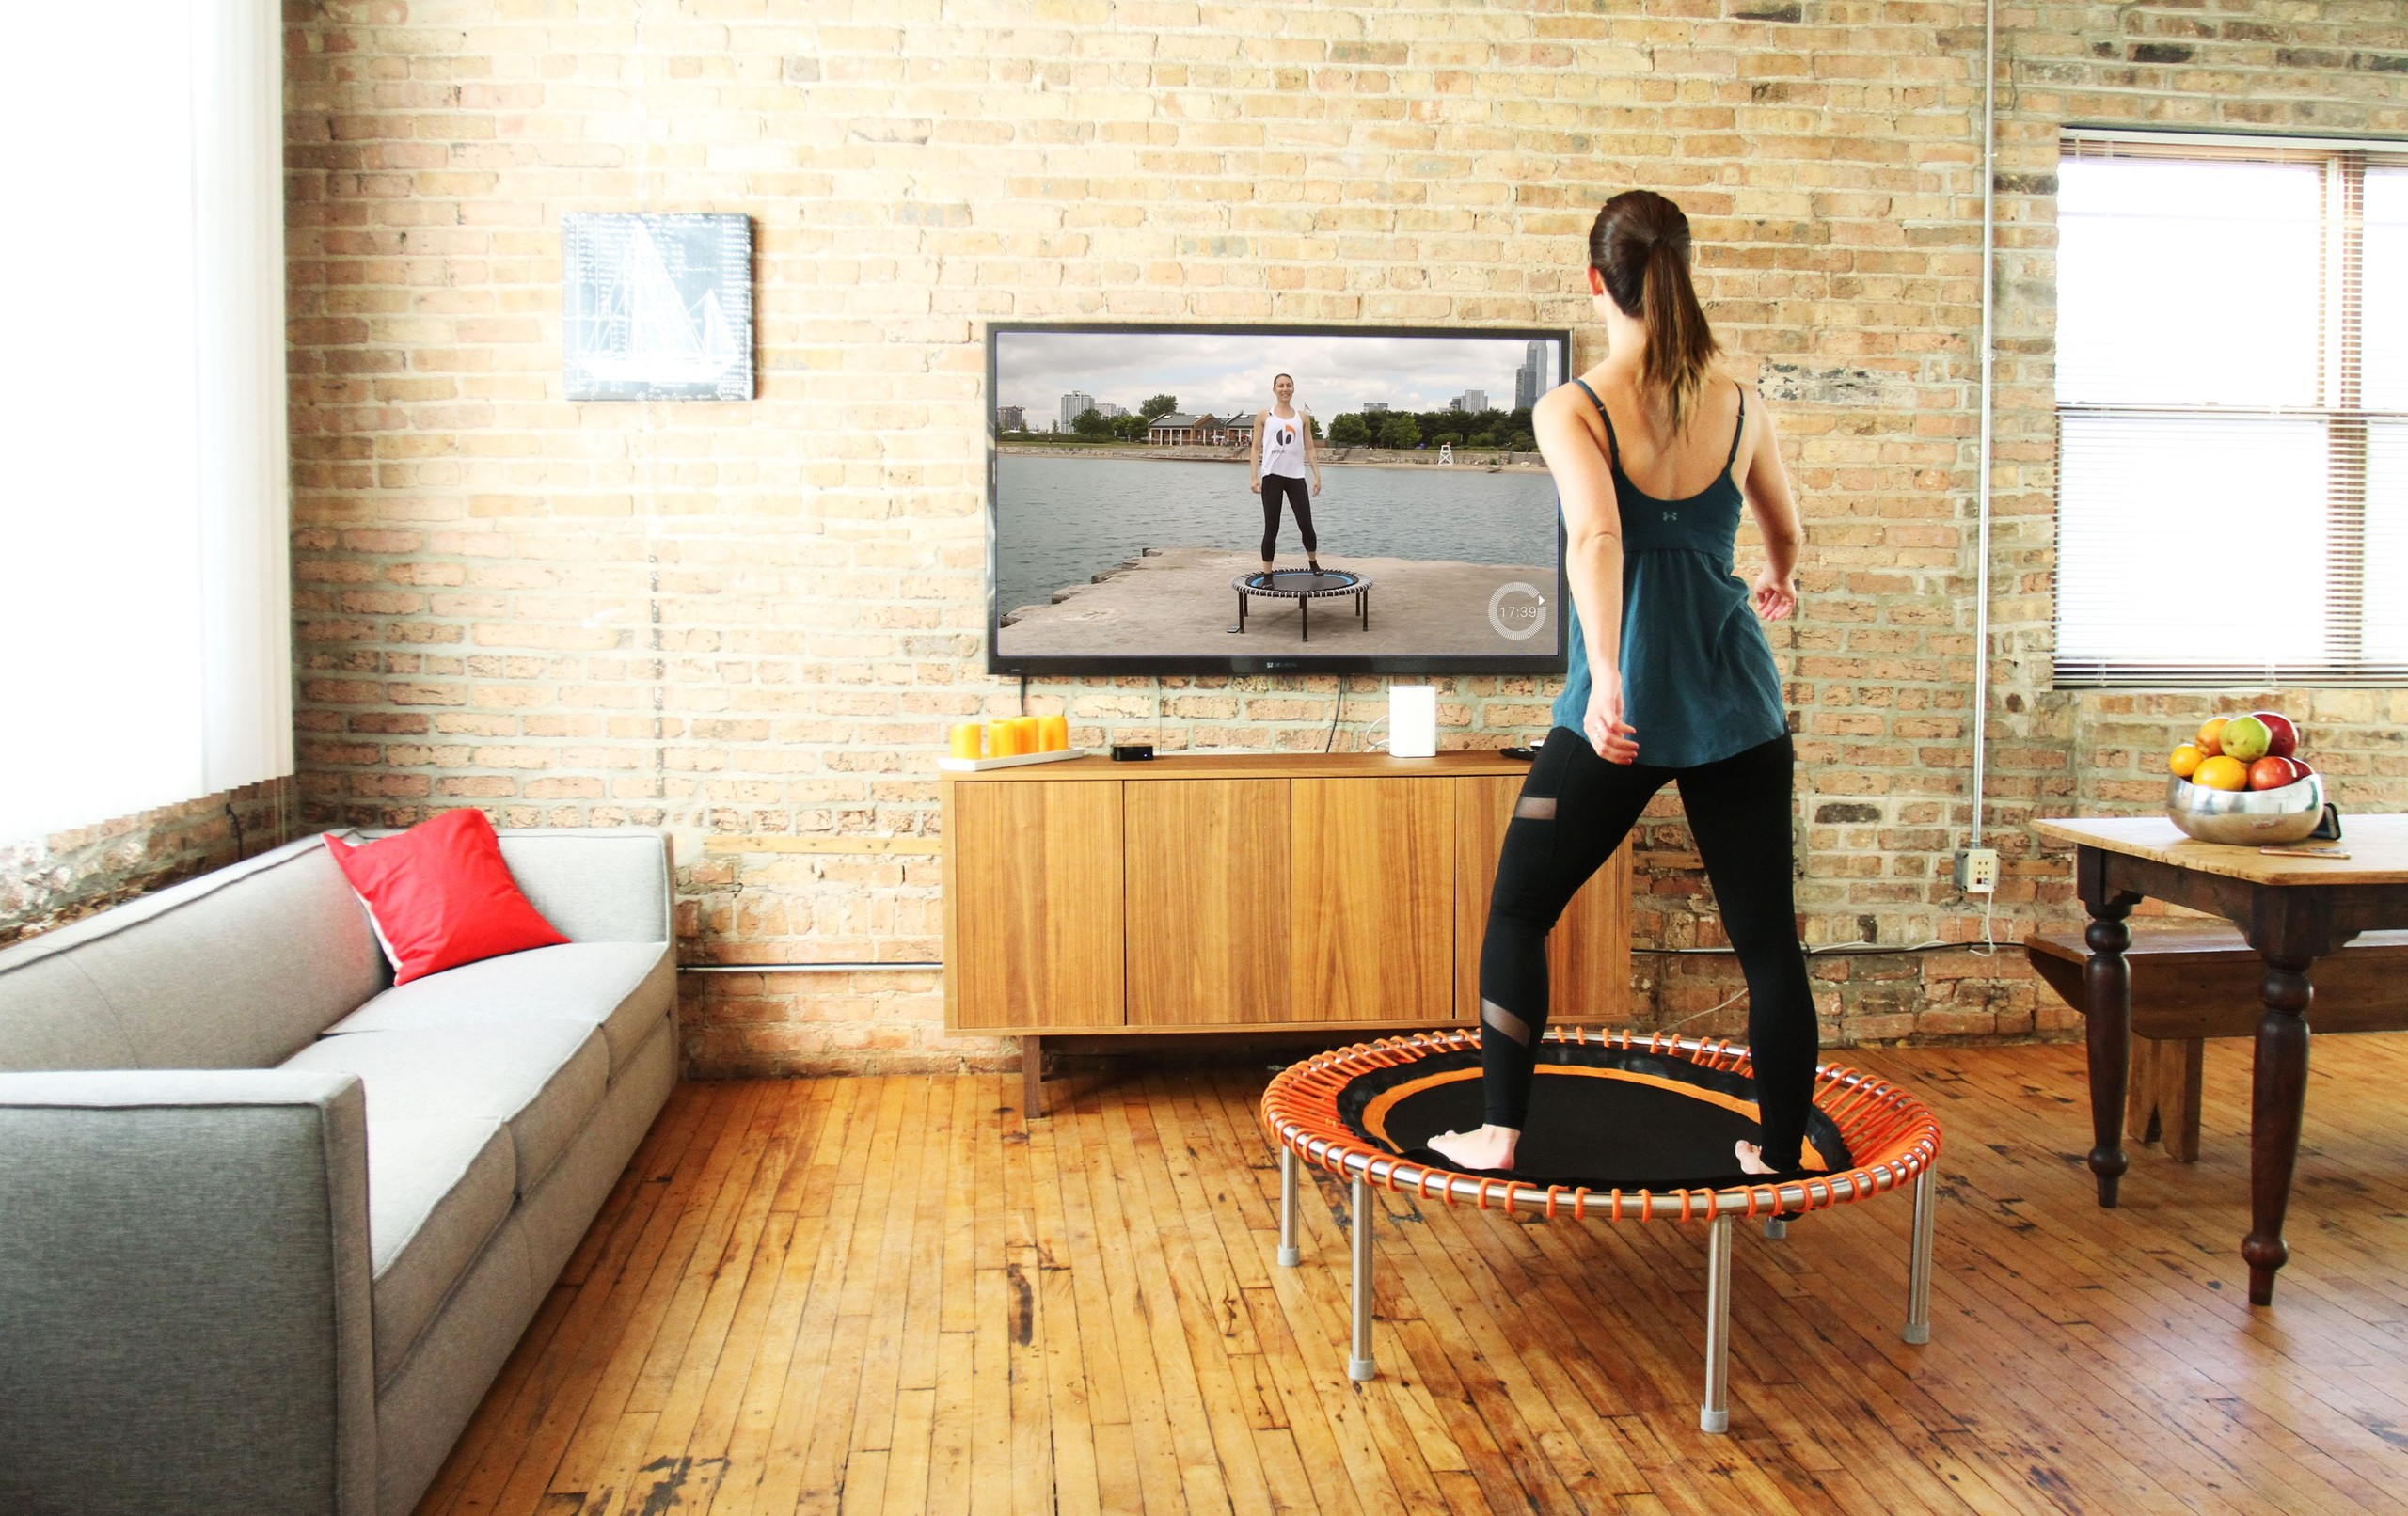 Running on a trampoline for exercise